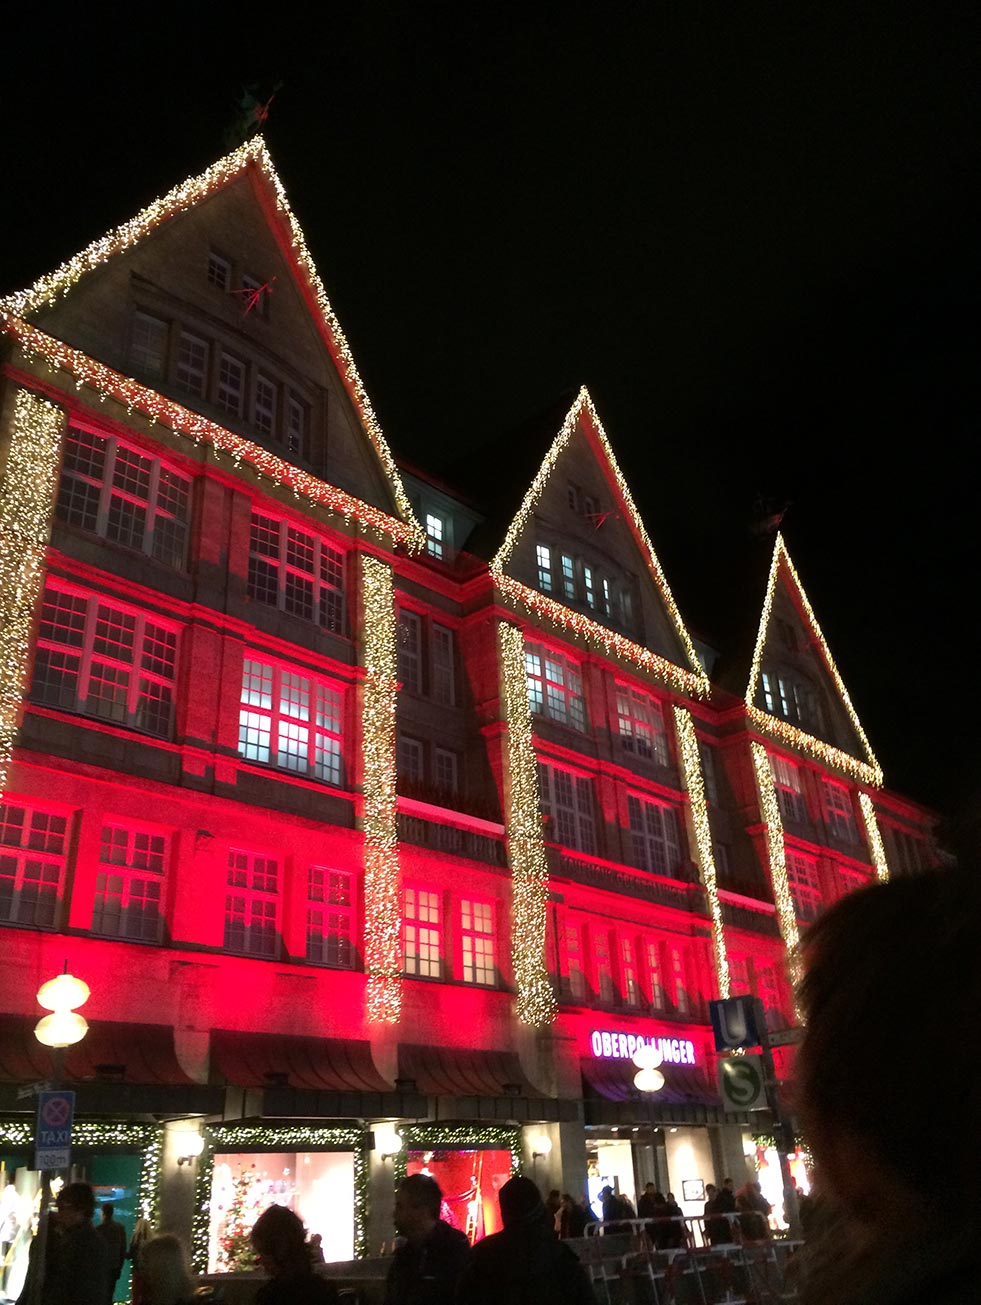 Lit up buildings in Munich, Germany during Christmas.